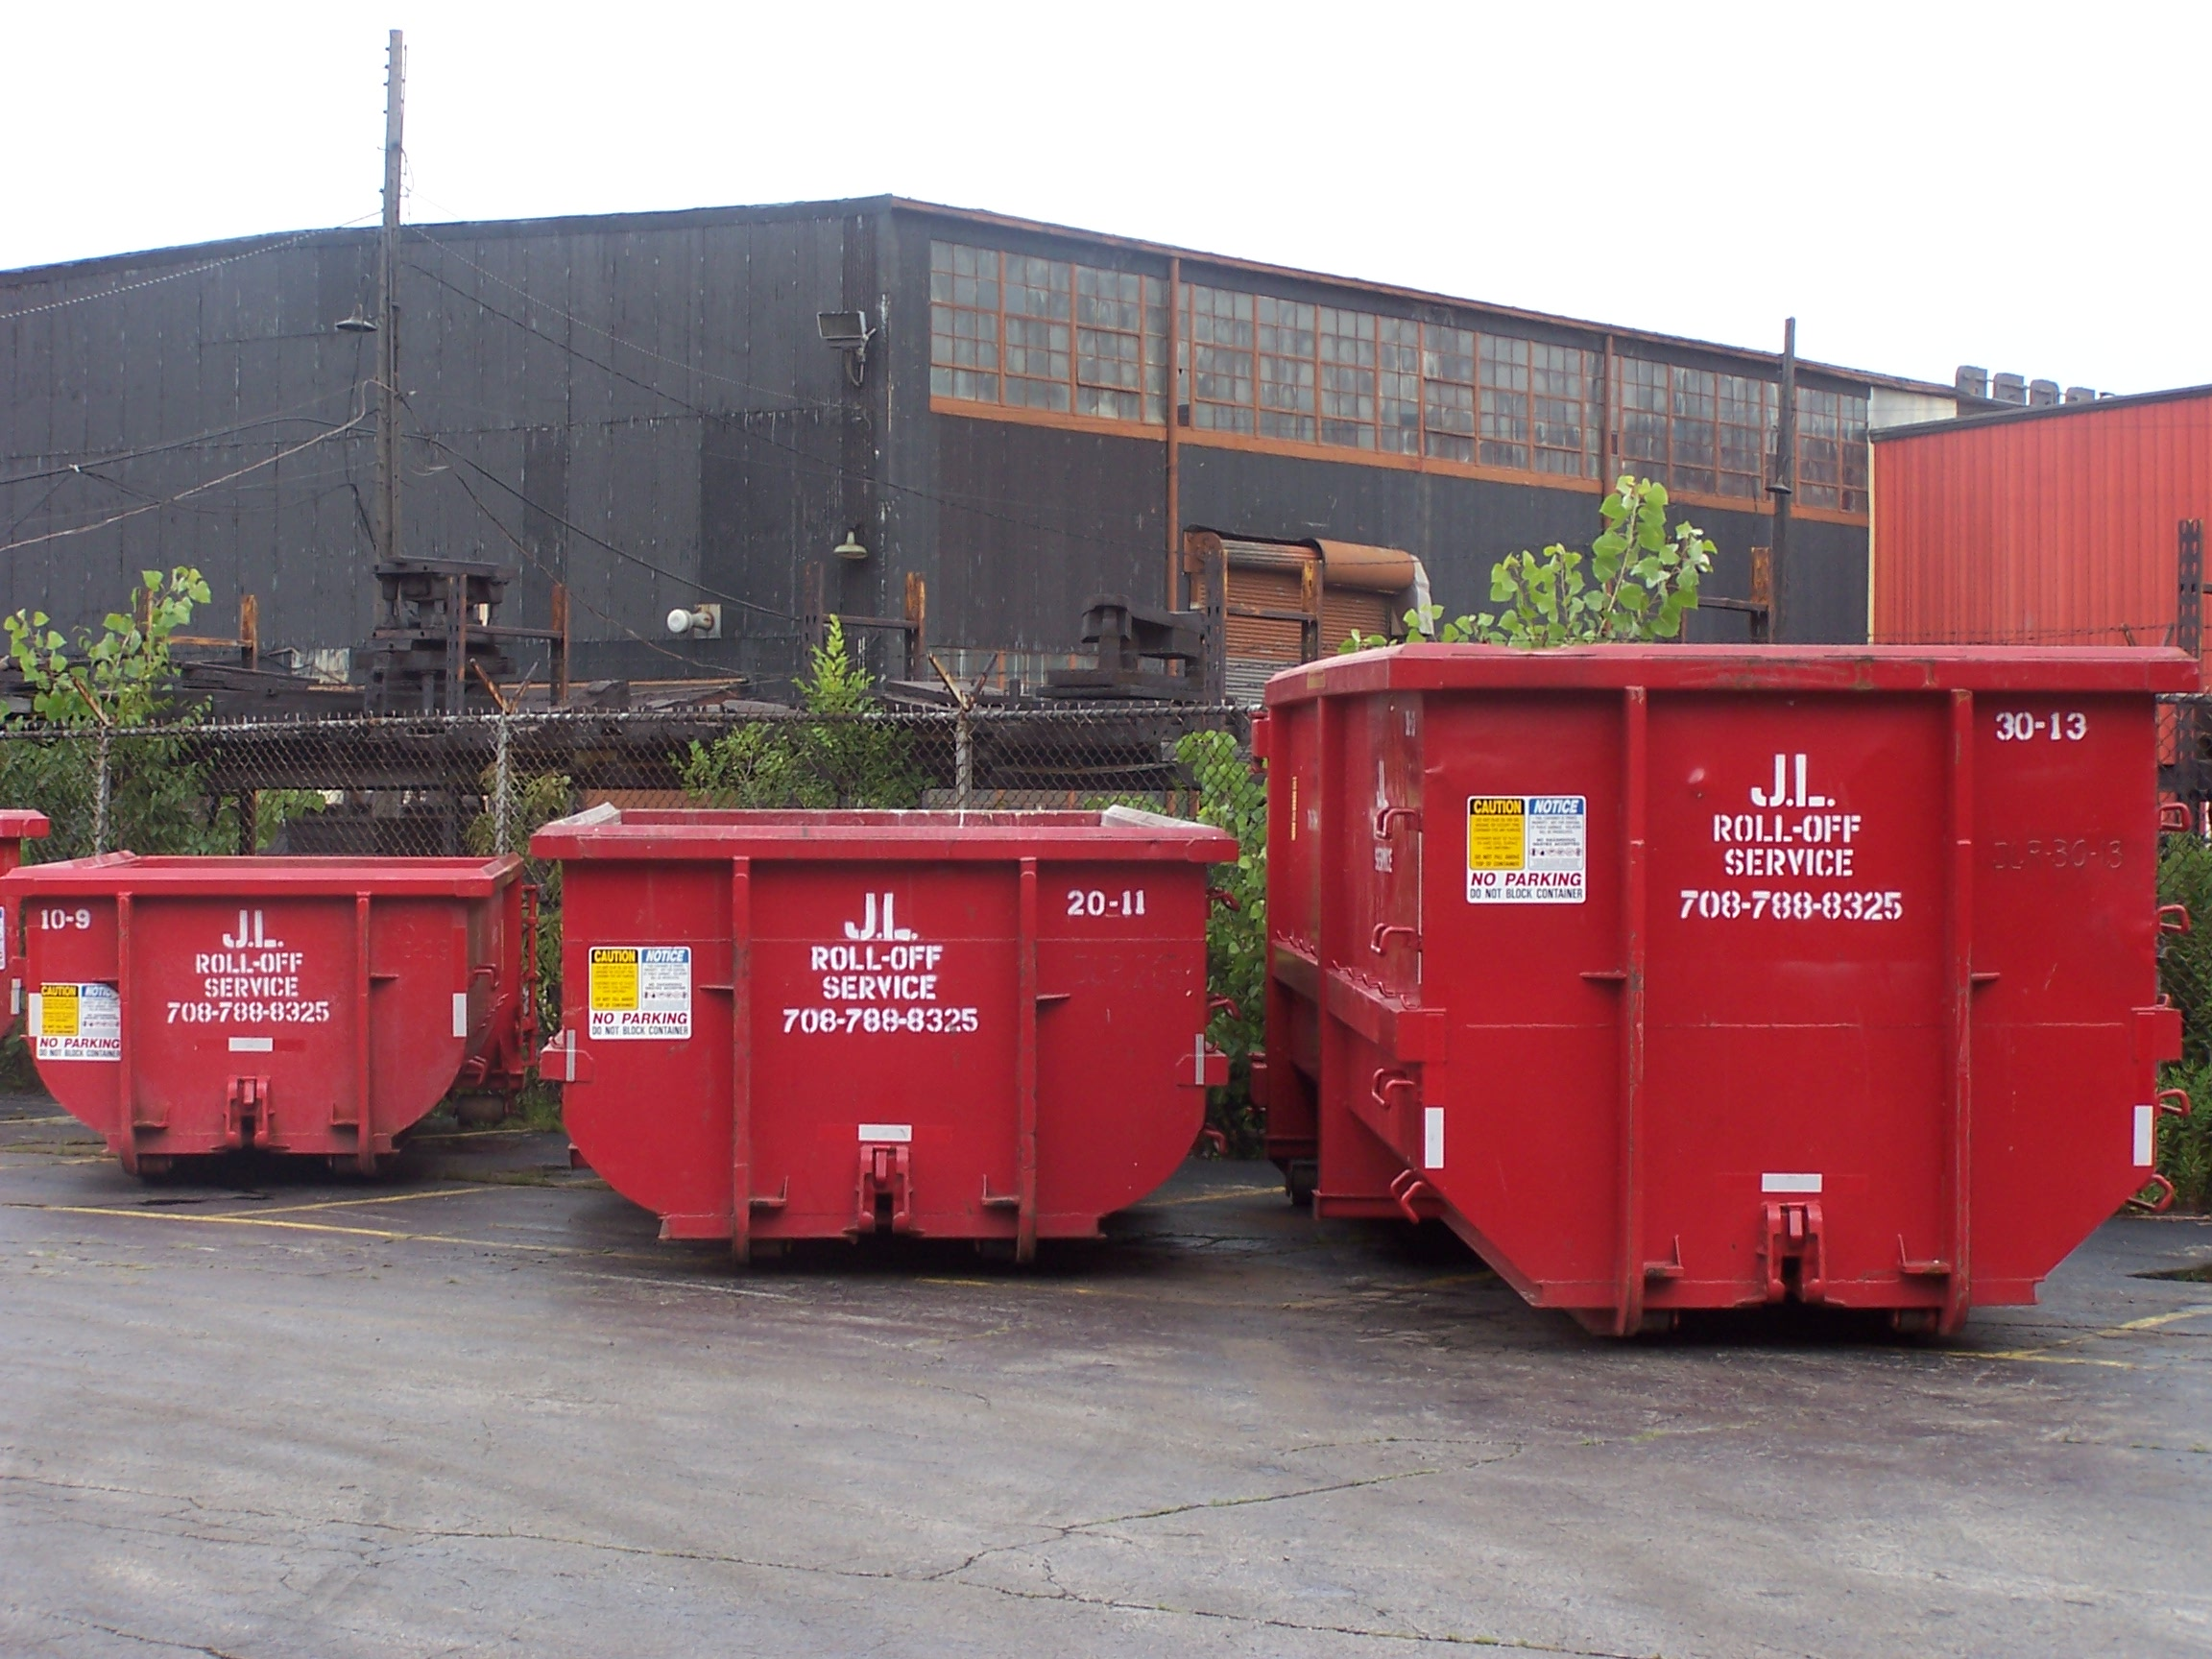 Dumpster sizes, front view